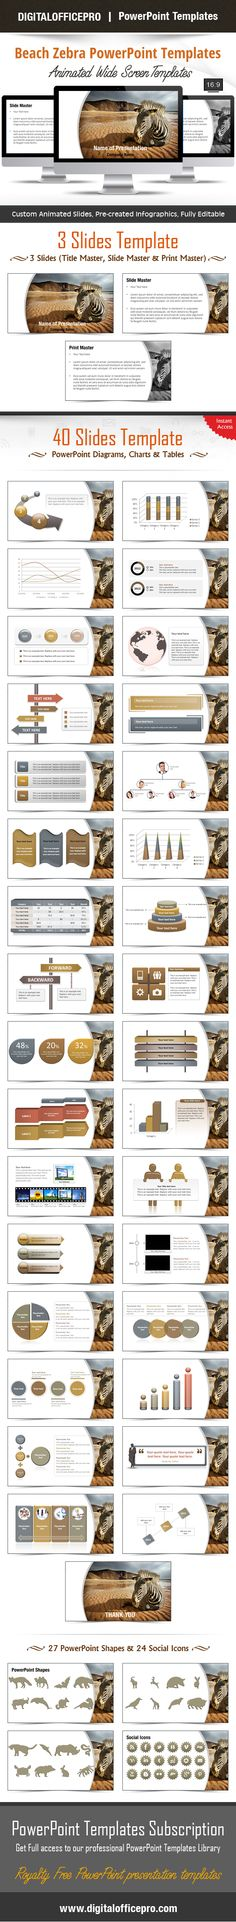 Virtual beauty powerpoint template backgrounds beach zebra powerpoint template backgrounds toneelgroepblik Image collections